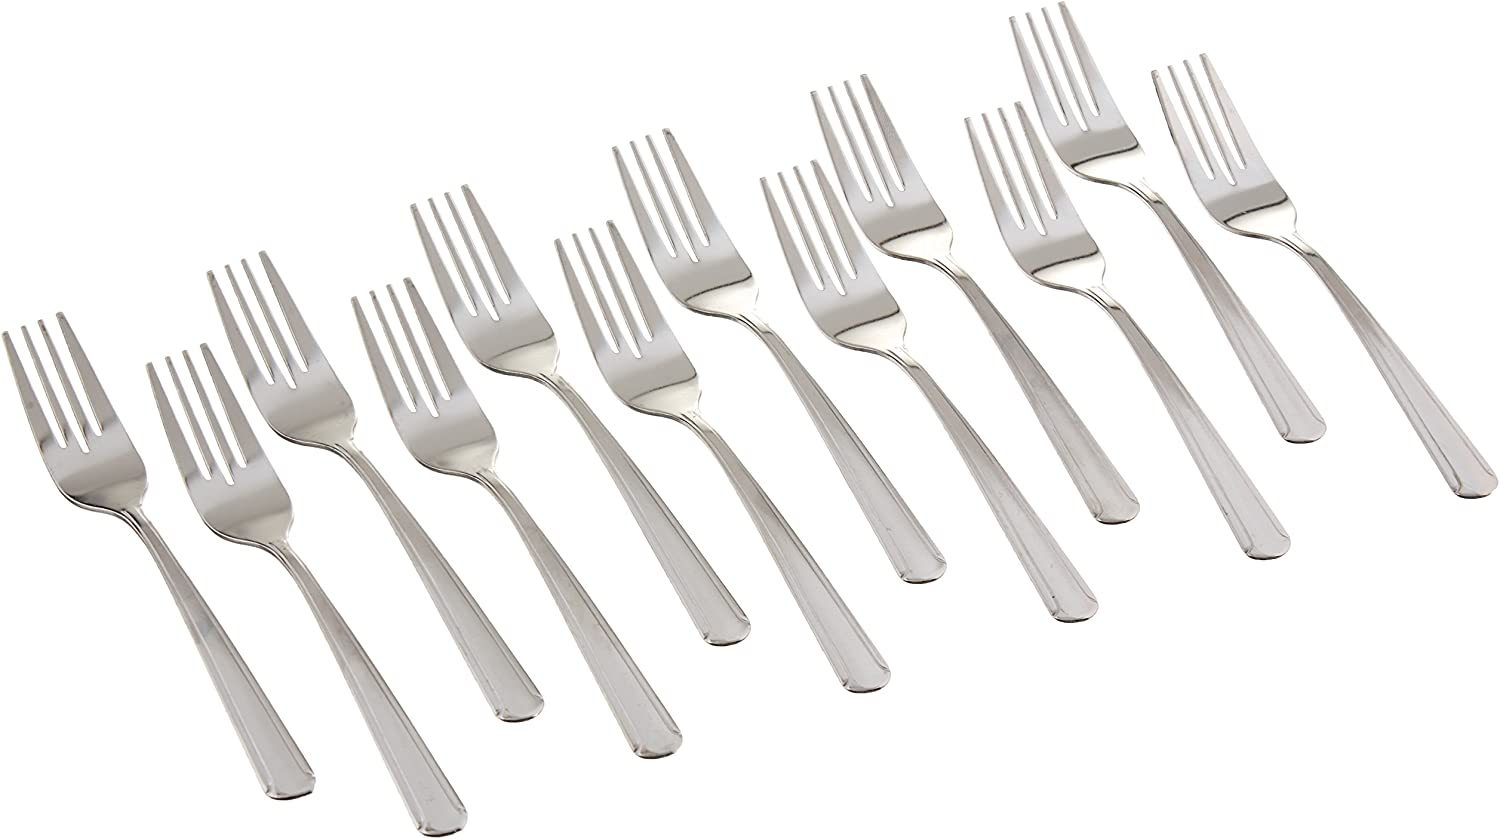 Winco 0001-06 12-Piece Dominion Salad Fork Set, 18-0 Stainless Steel